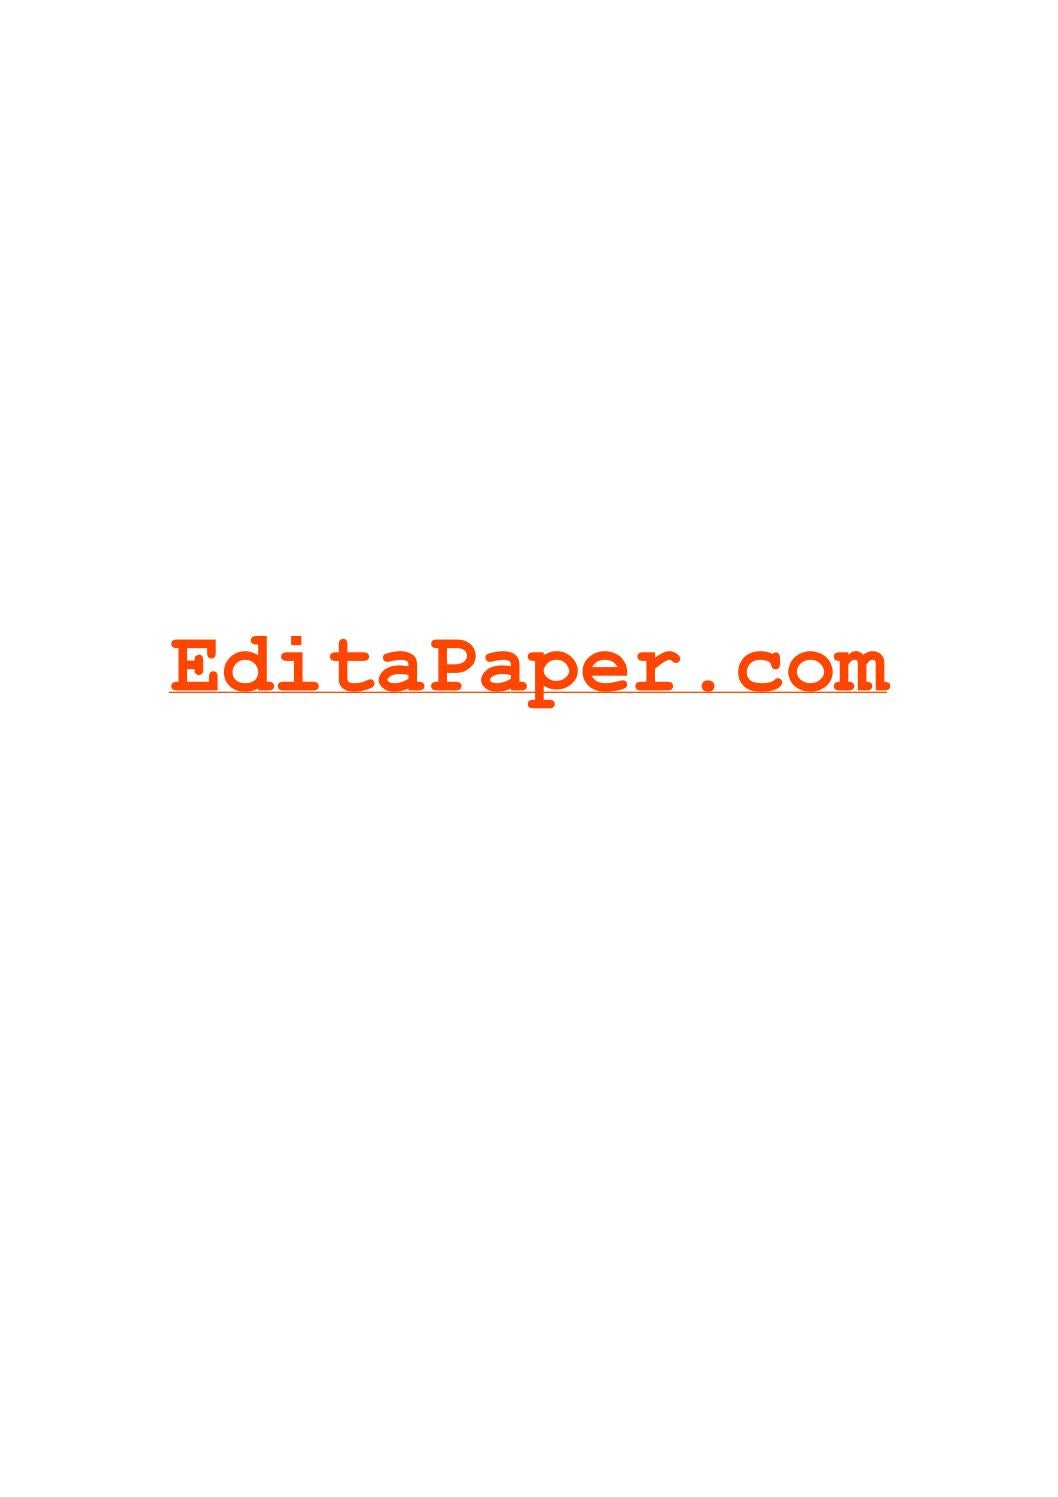 Jessy Erinn Biography how to write a review essay on a product?daledimf - issuu